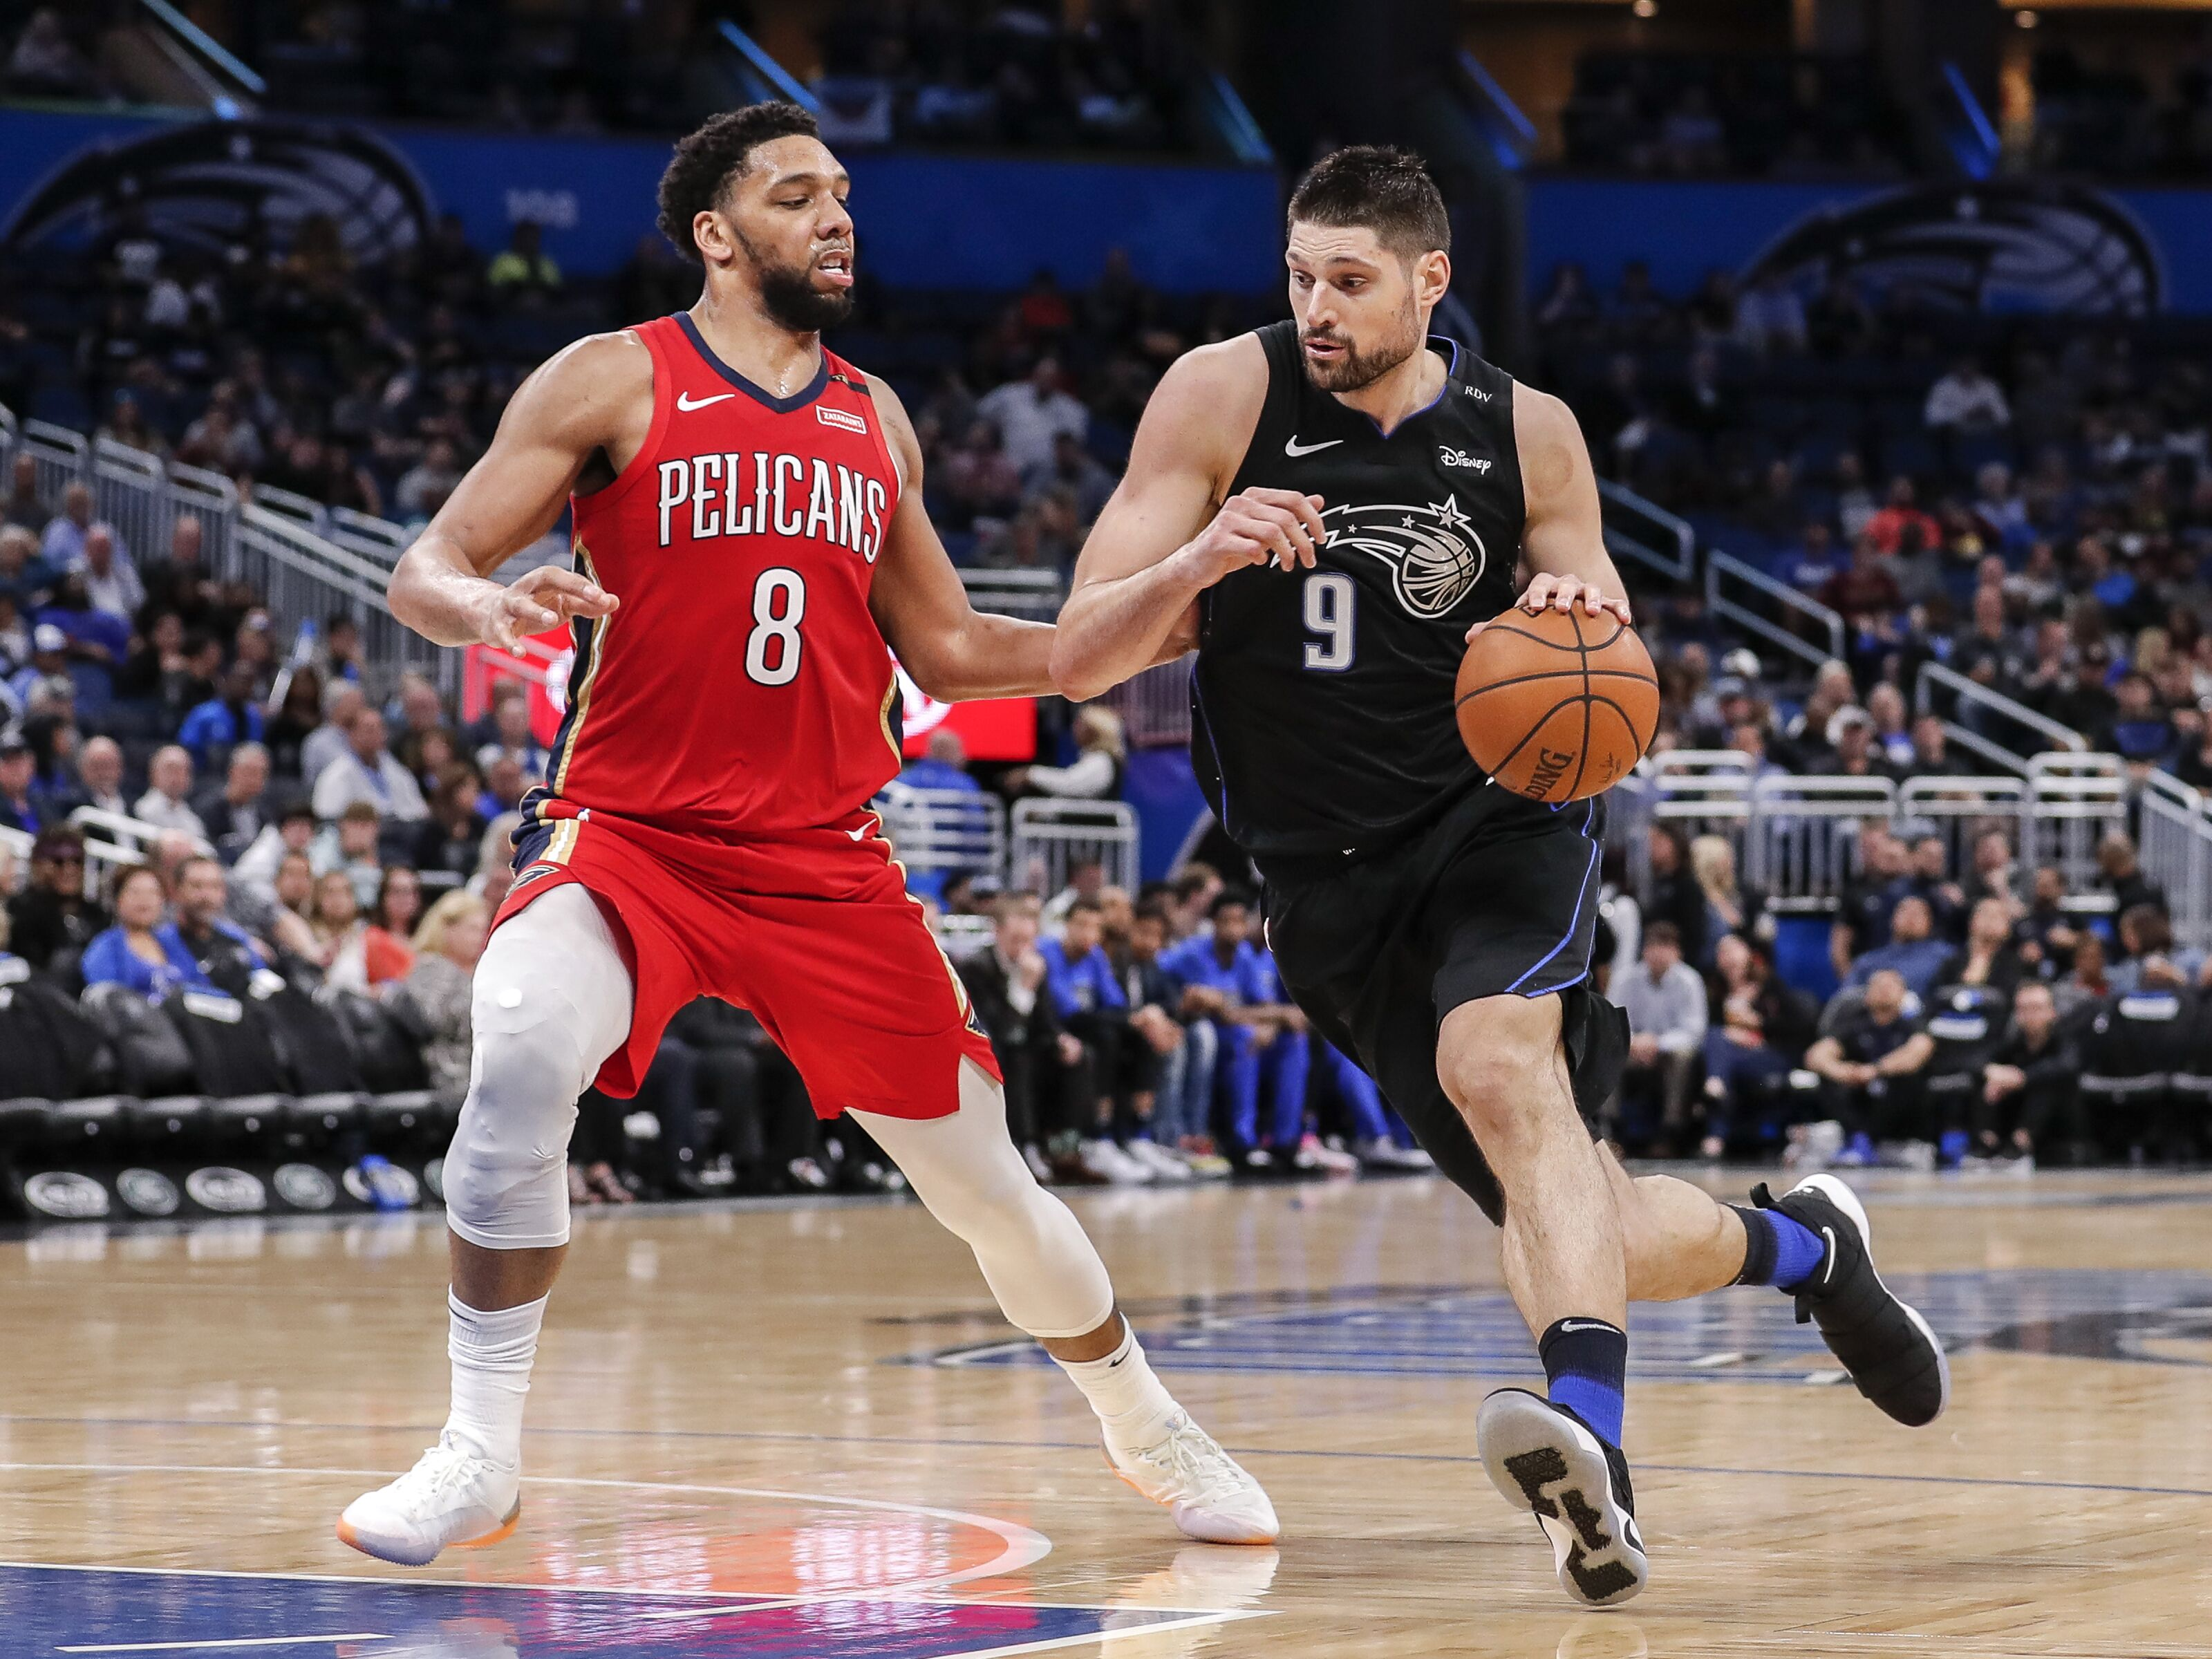 Jahlil Okafor experience coming to an end for the New Orleans Pelicans?